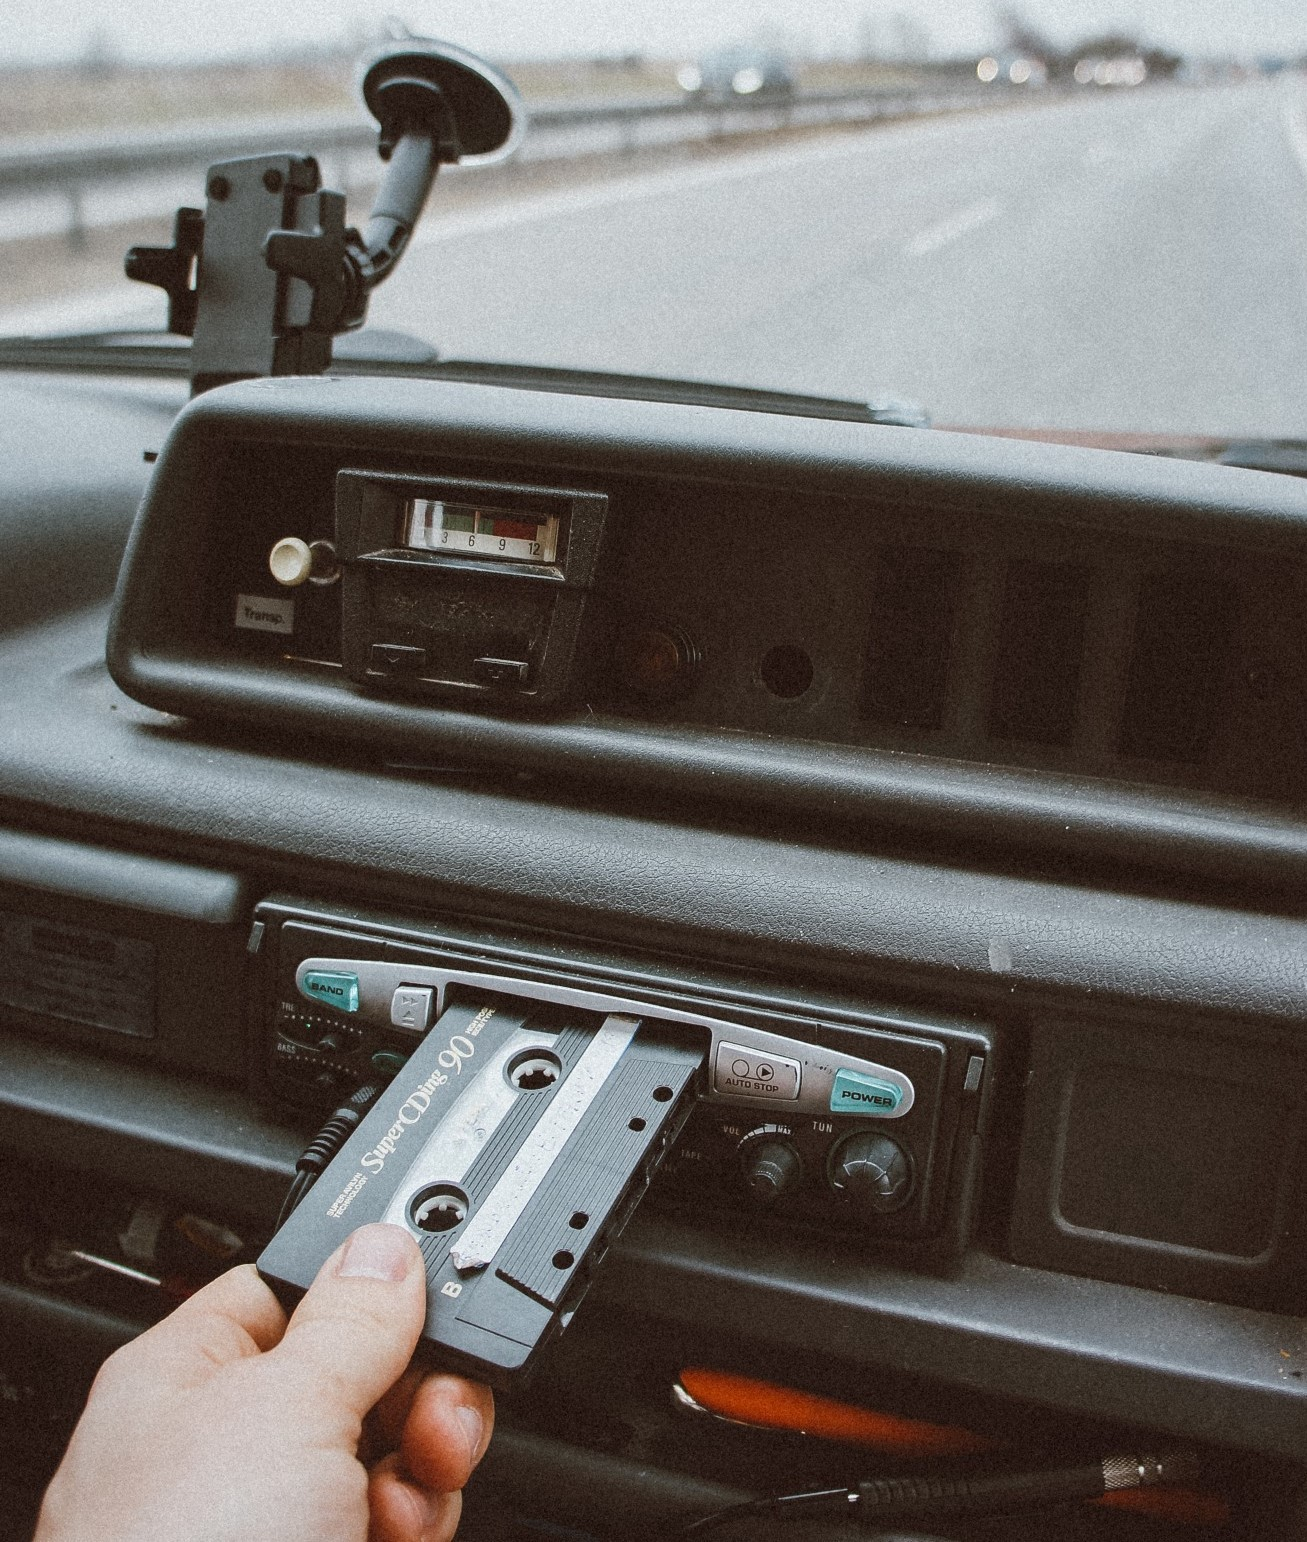 Hand placing a cassette into the car player